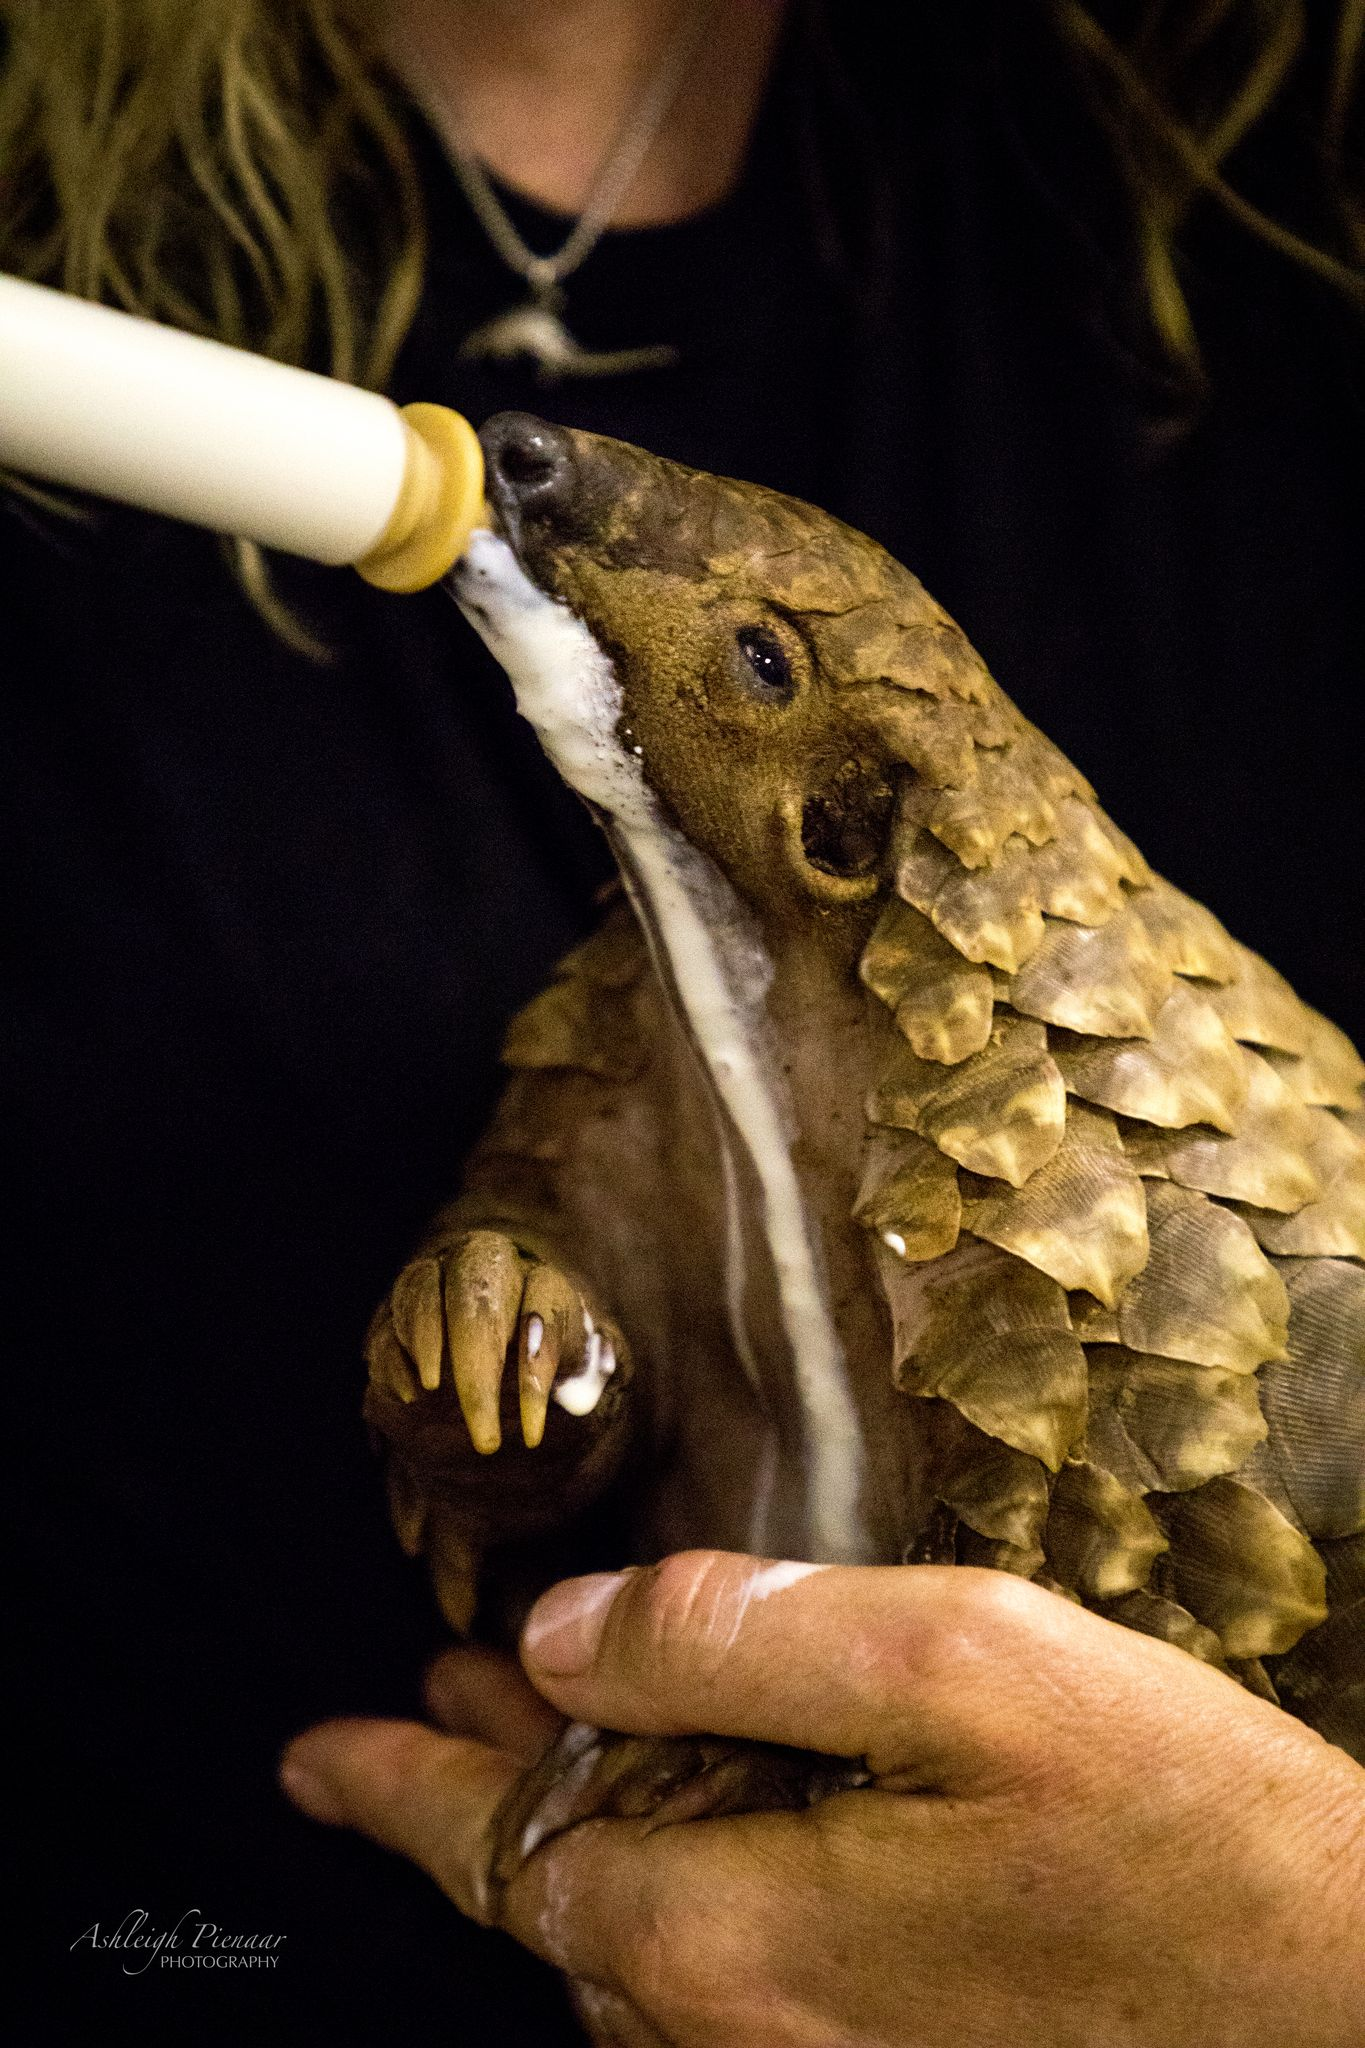 Verzorging van een pangolin -@visions_through_the_viewfinder Johannesburg Wildlife Vet